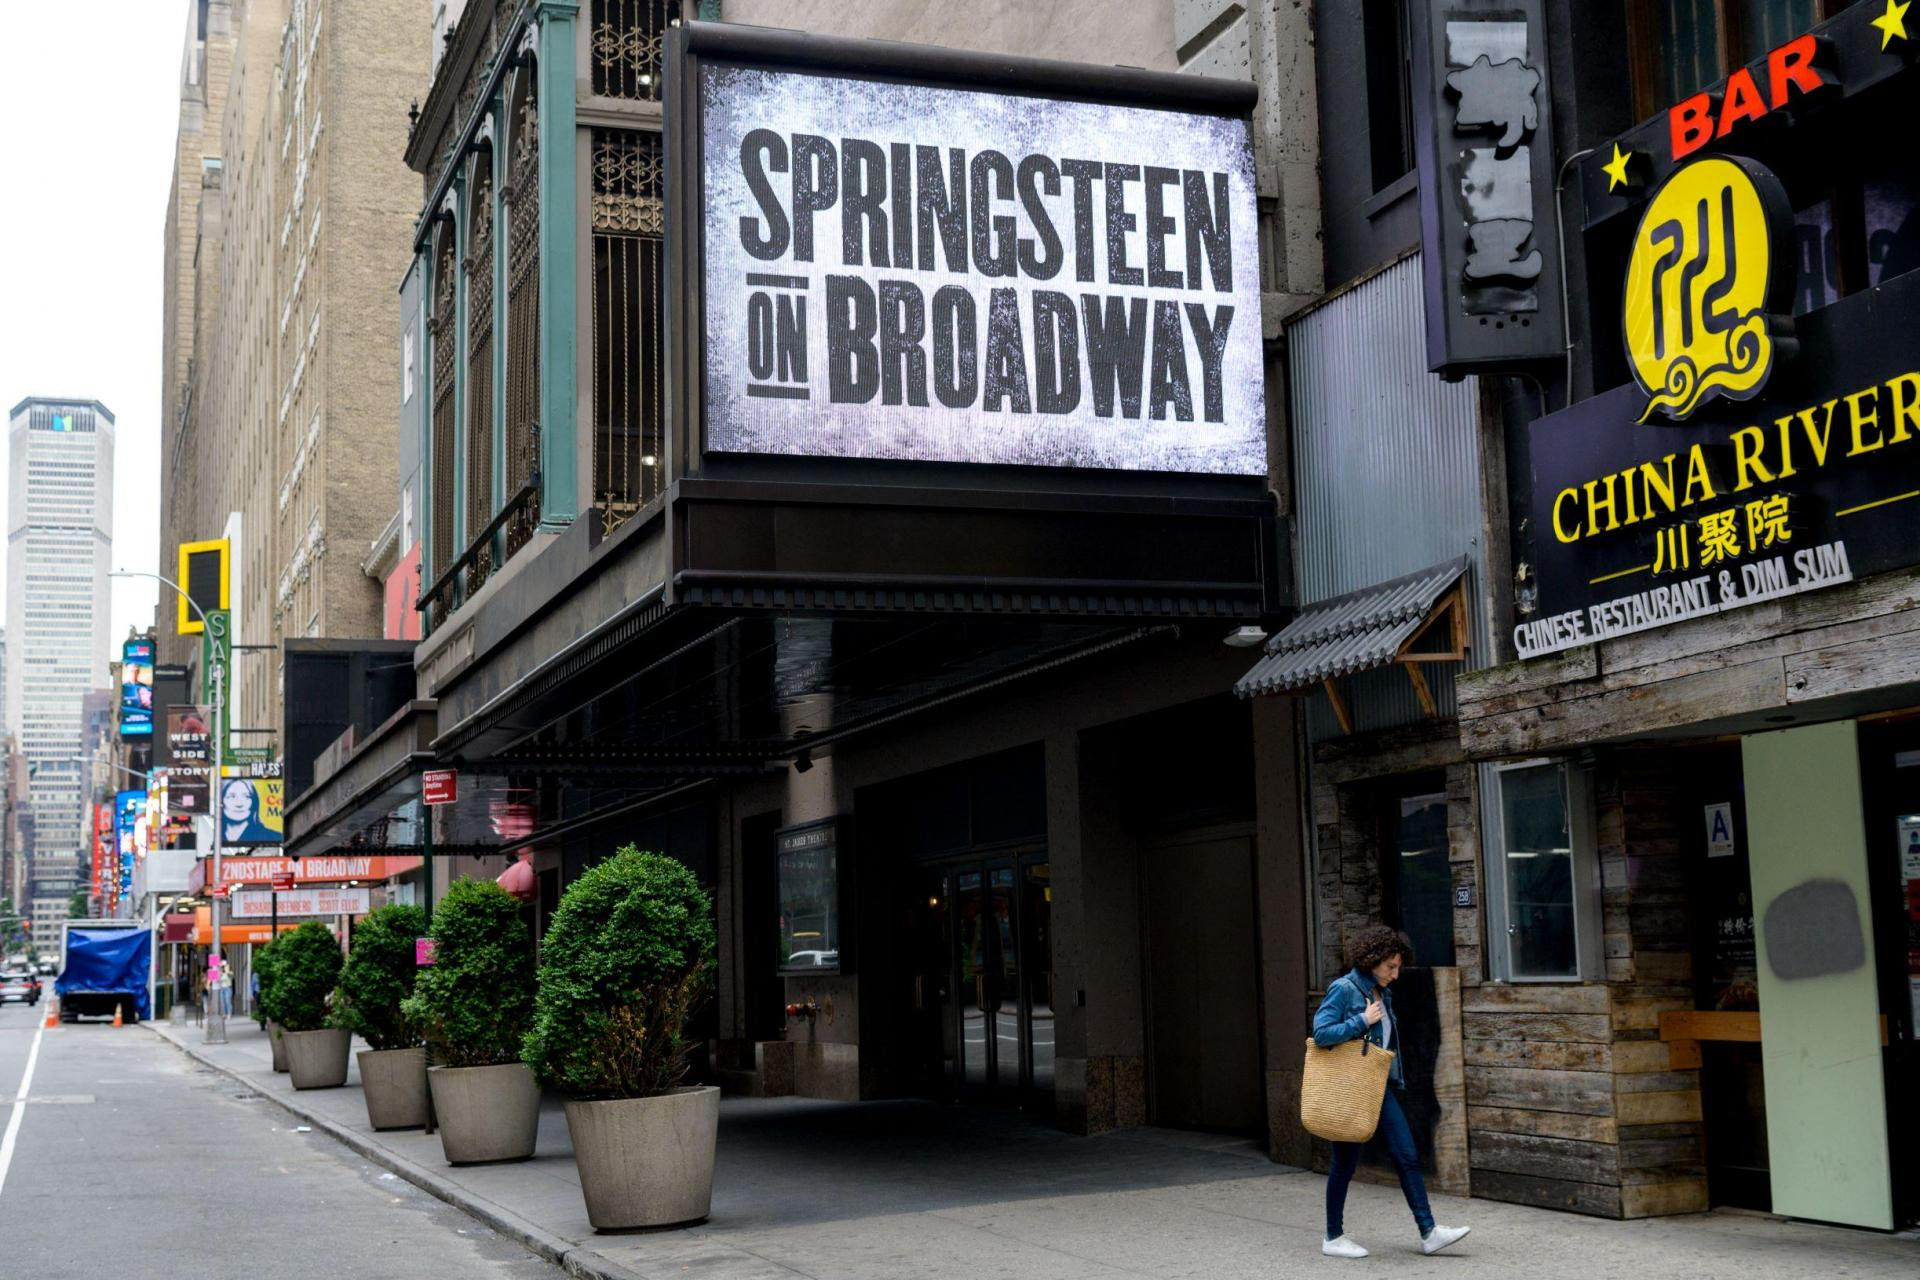 People walk past the St James Theatre after it announced Bruce Springsteen's return to Broadway on June 26th with 'Springsteen on Broadway' on June 11, 2021.